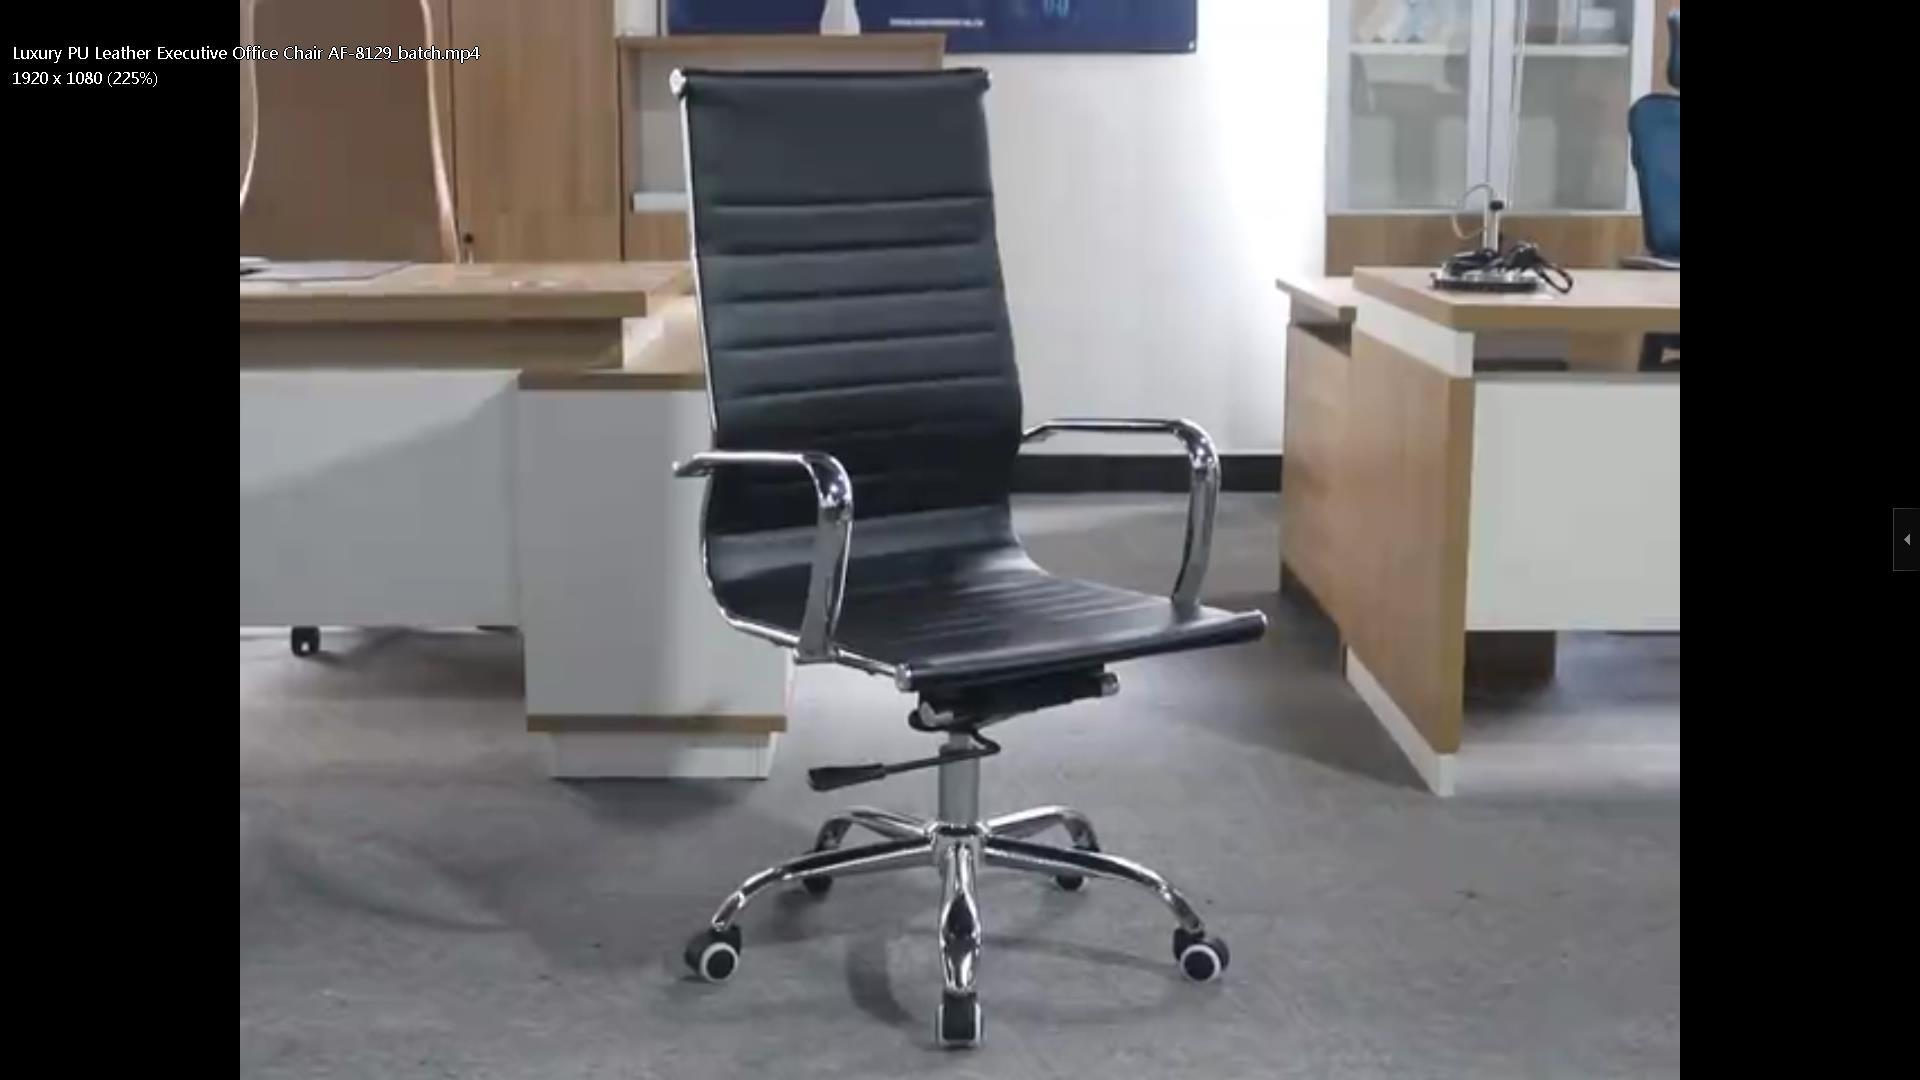 Luxury PU Leather Executive Office Chair AF-8129